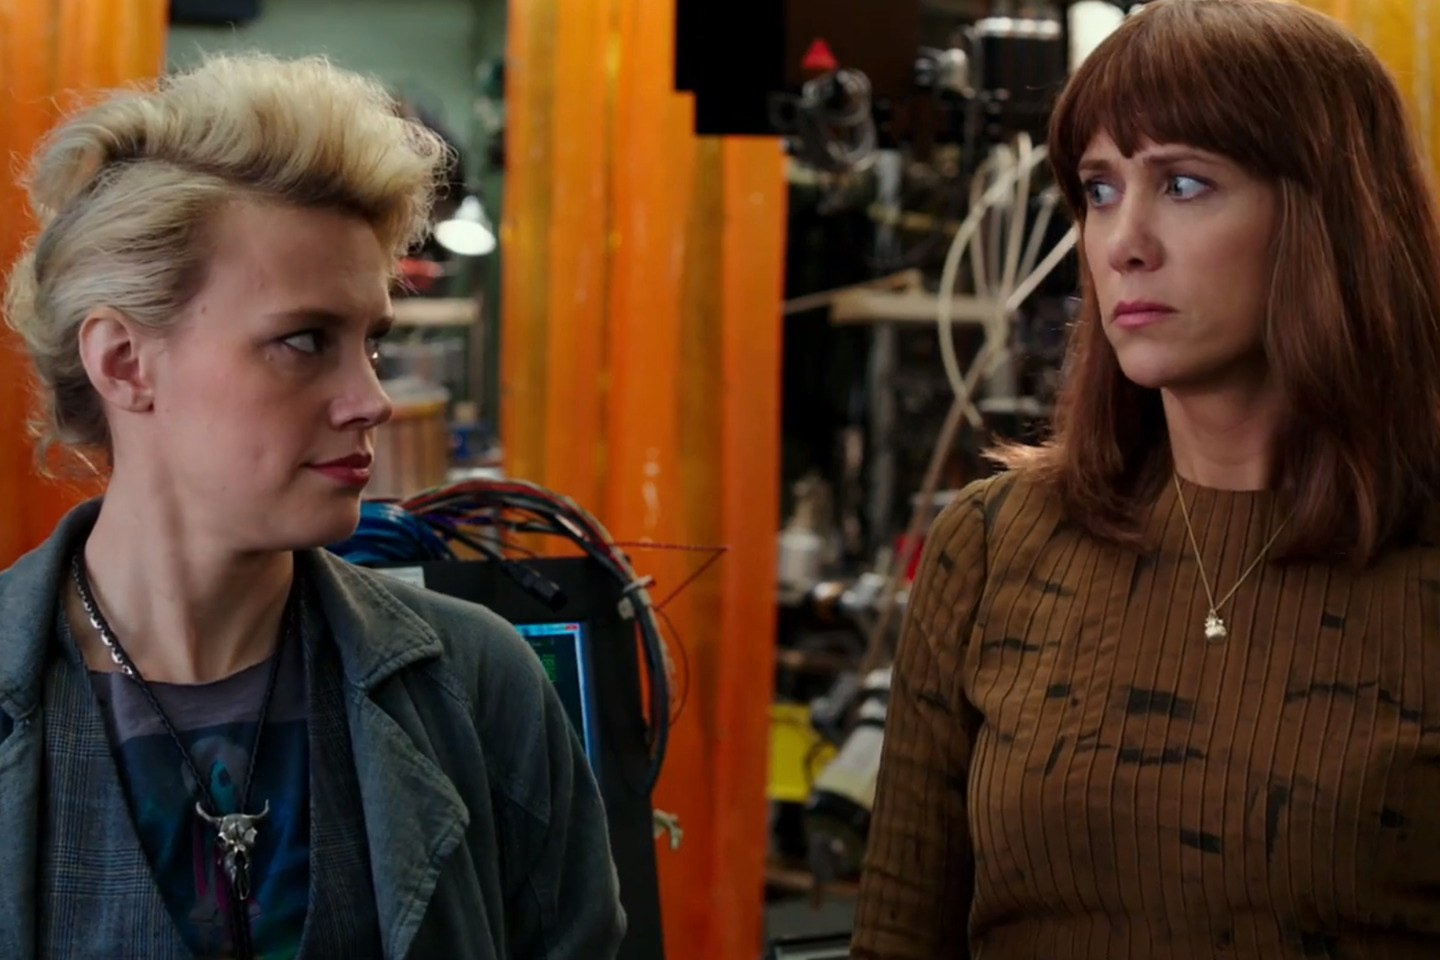 Kate Mckinnon Imdb >> Ghostbusters and the Rules of Reboots | Dorkadia